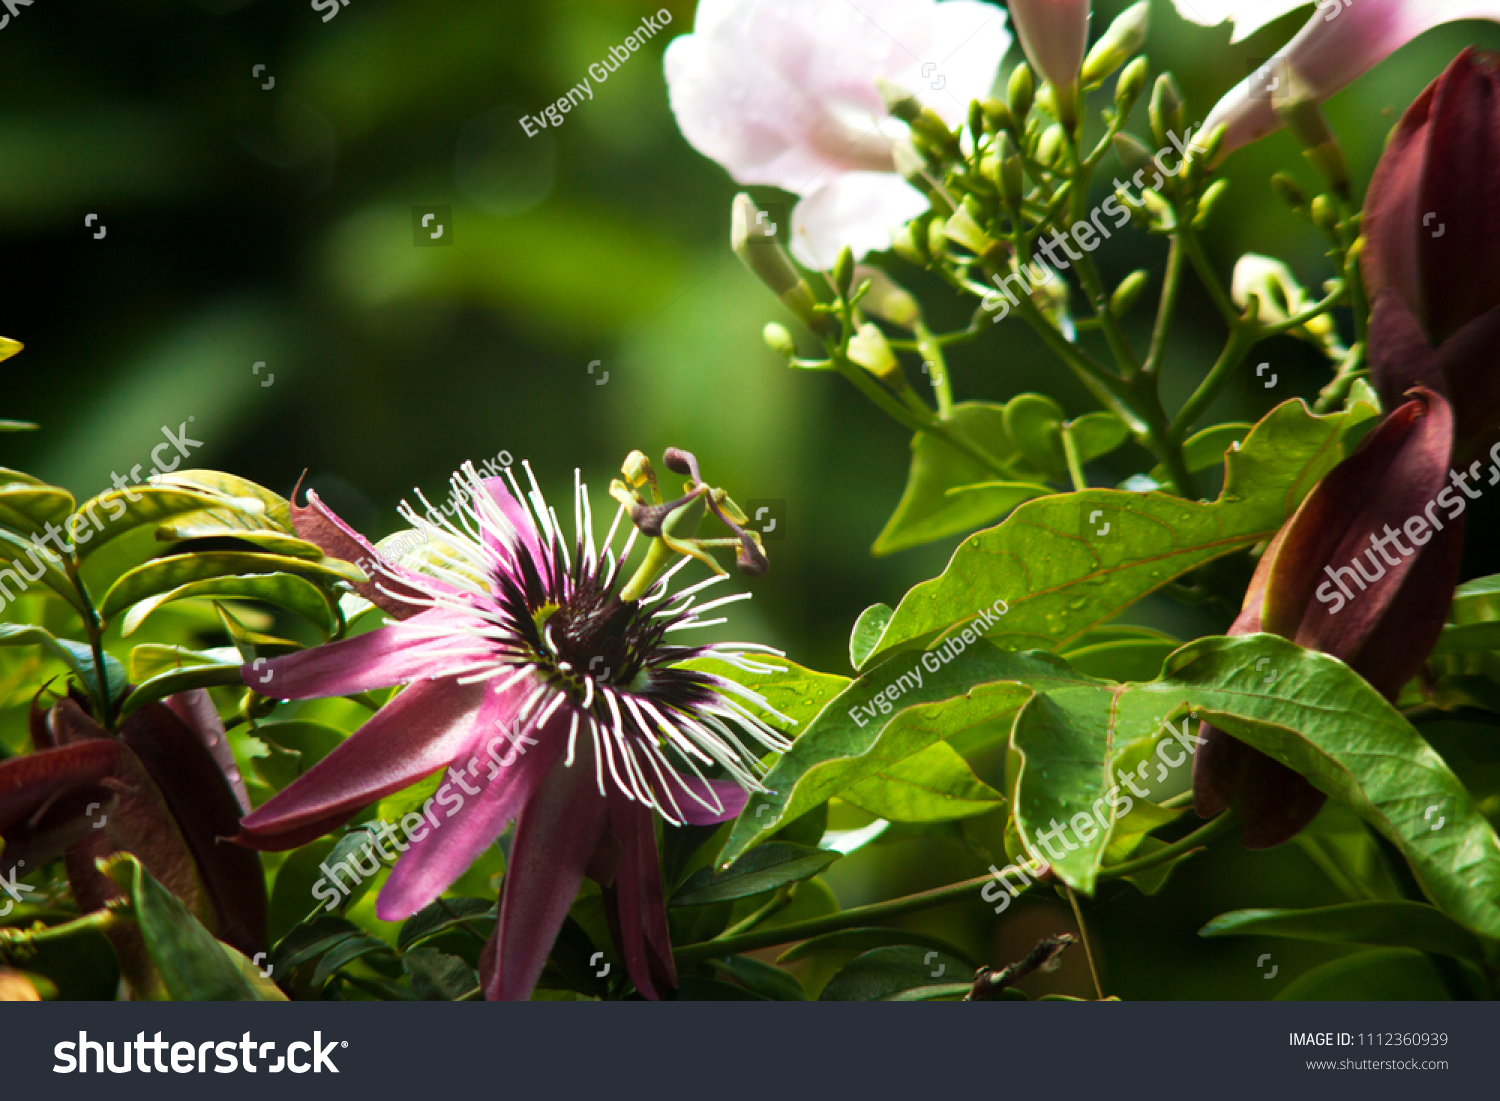 Beautiful Flower Pasiflora Macro Photography Blurred Stock Photo